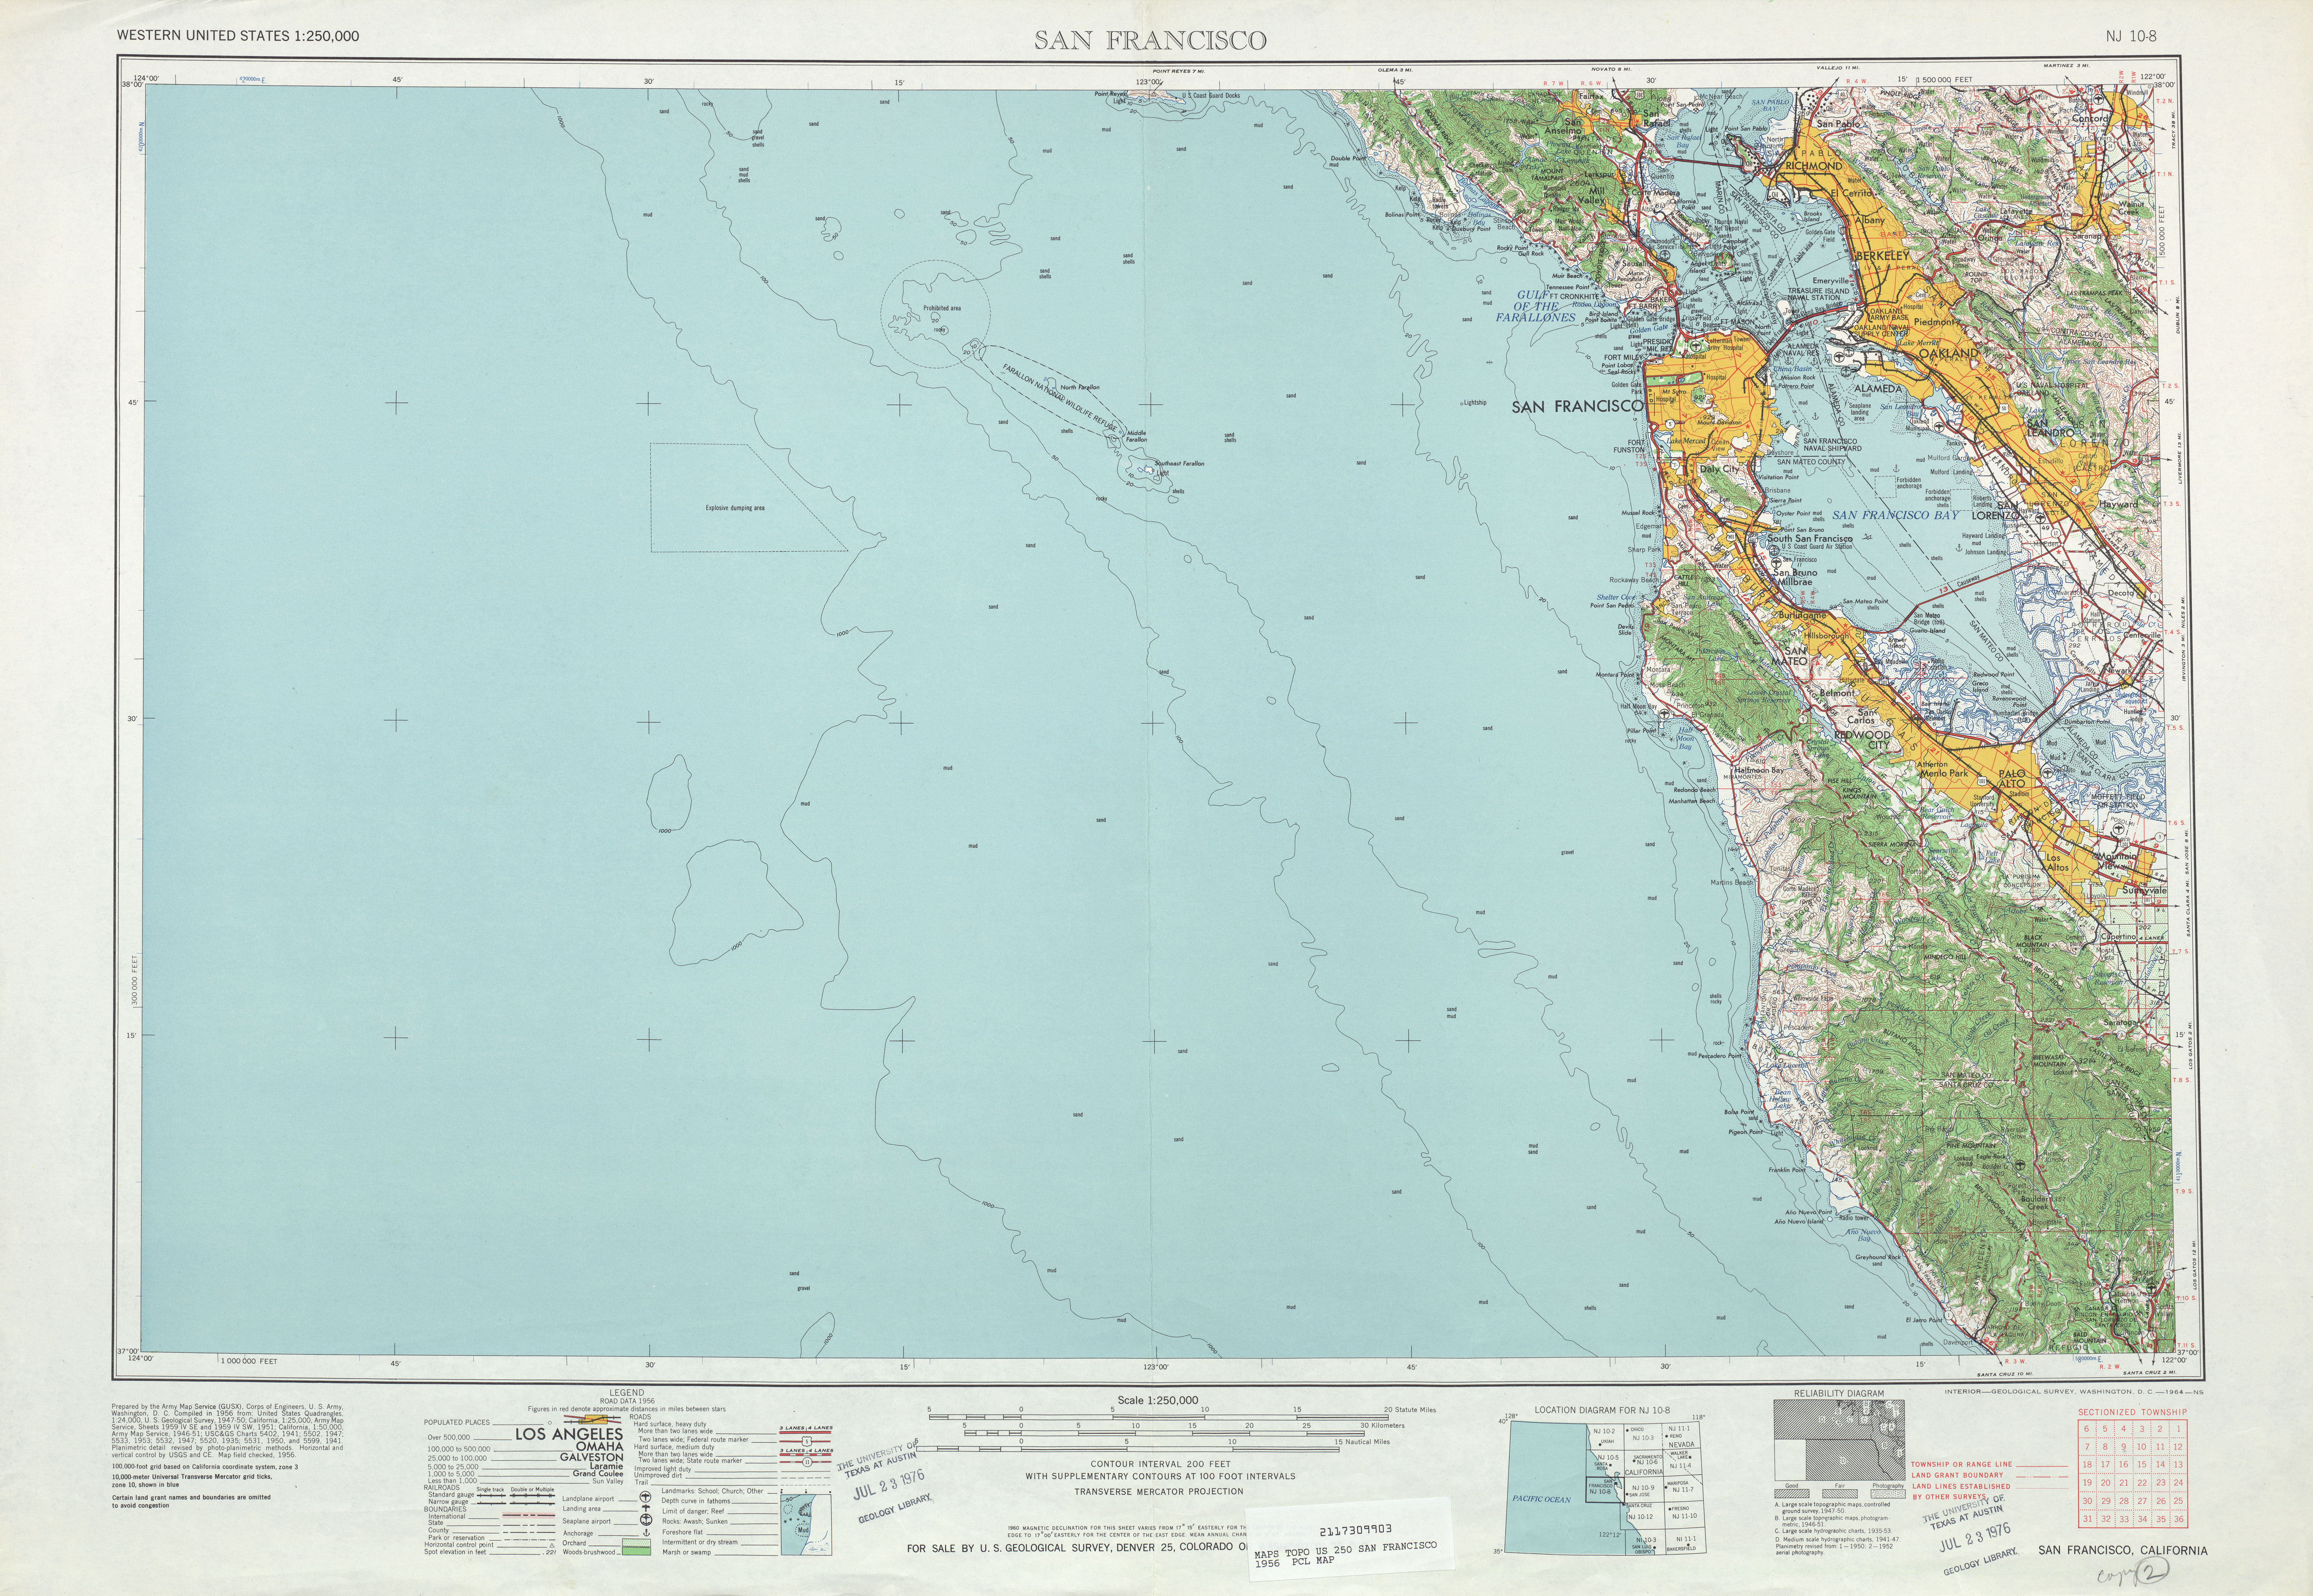 San Francisco Topographic Map Sheet, United States 1956